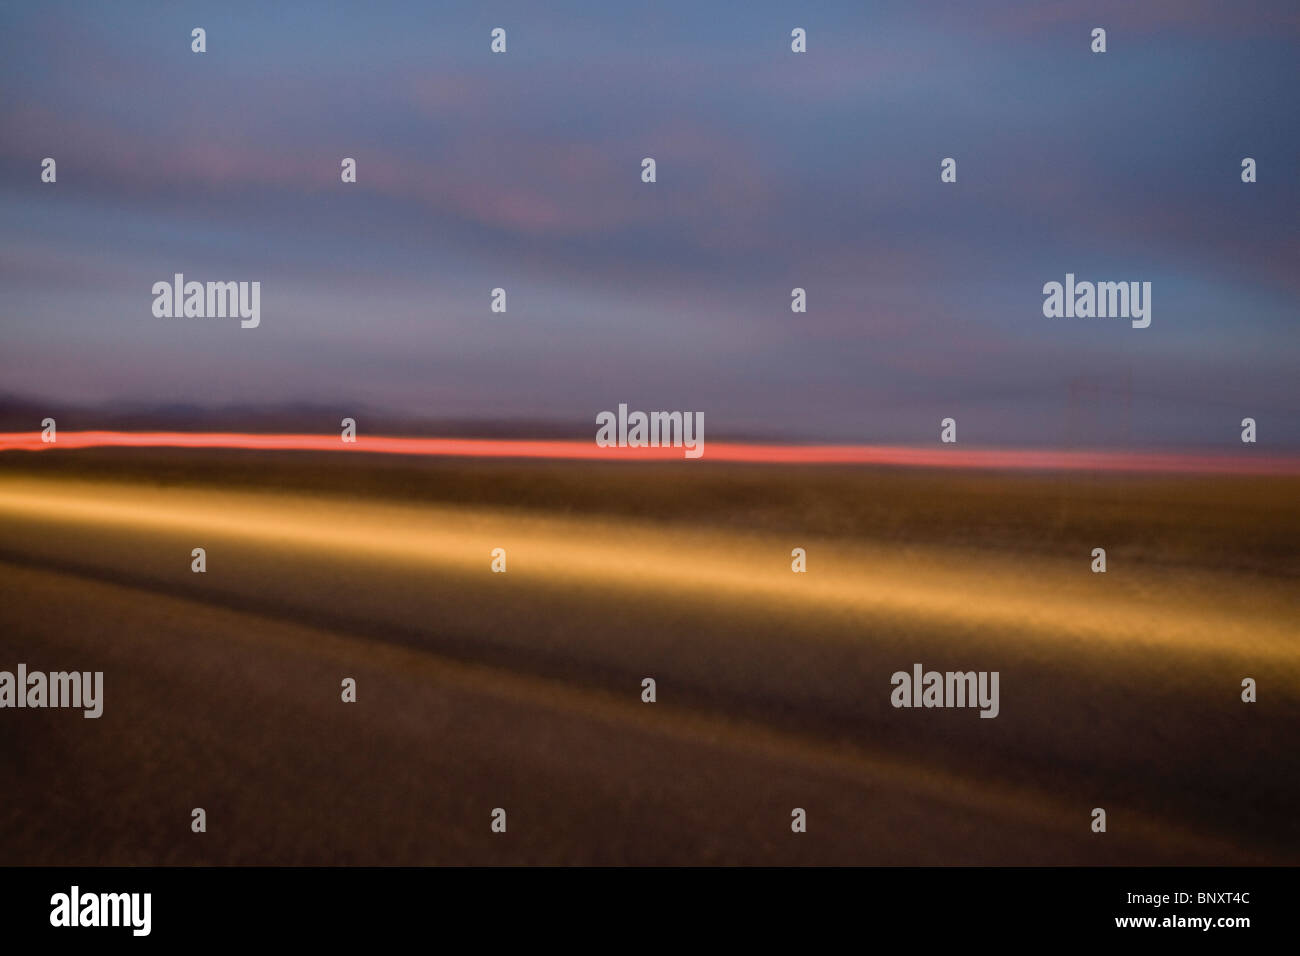 Light trails along highway - Stock Image